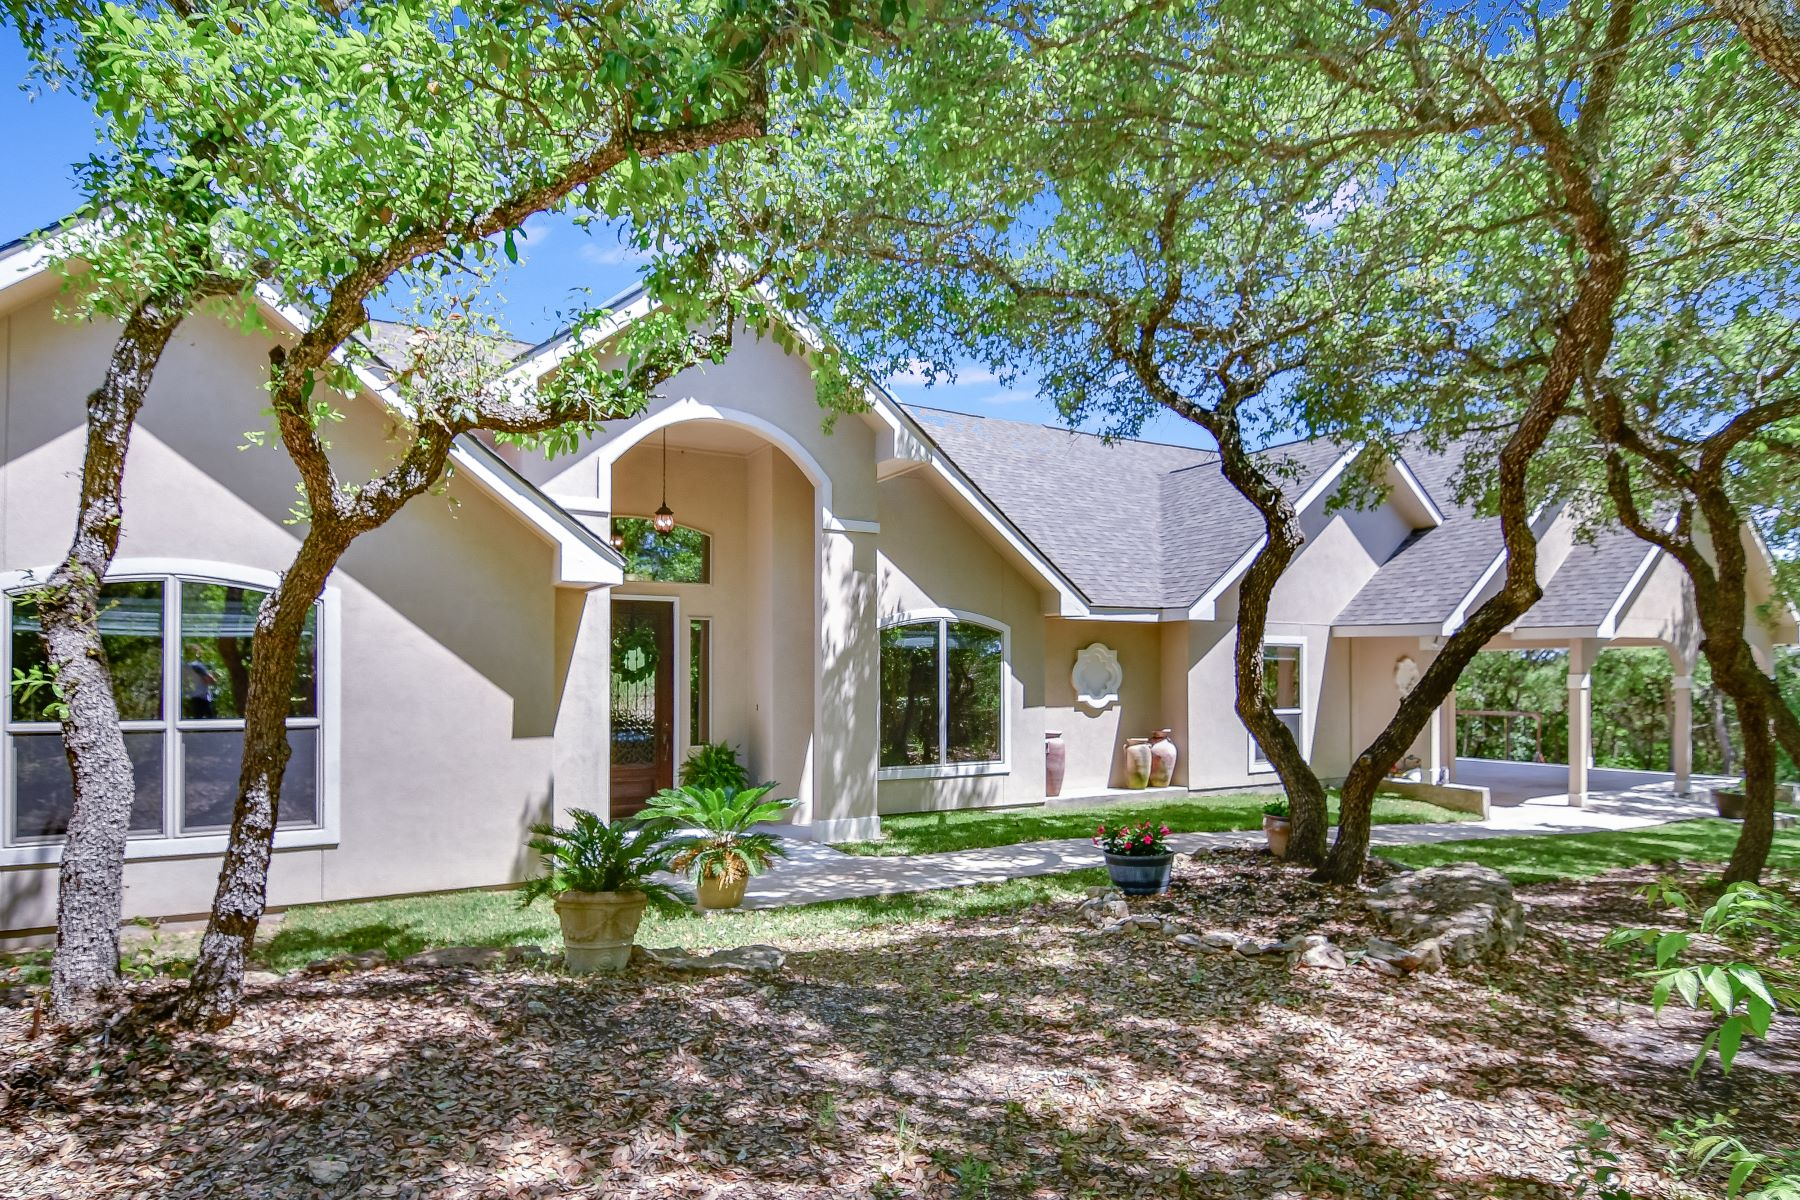 Single Family Homes for Sale at Peace and Solitude Minutes from the City 13637 Lytle Lane Helotes, Texas 78023 United States